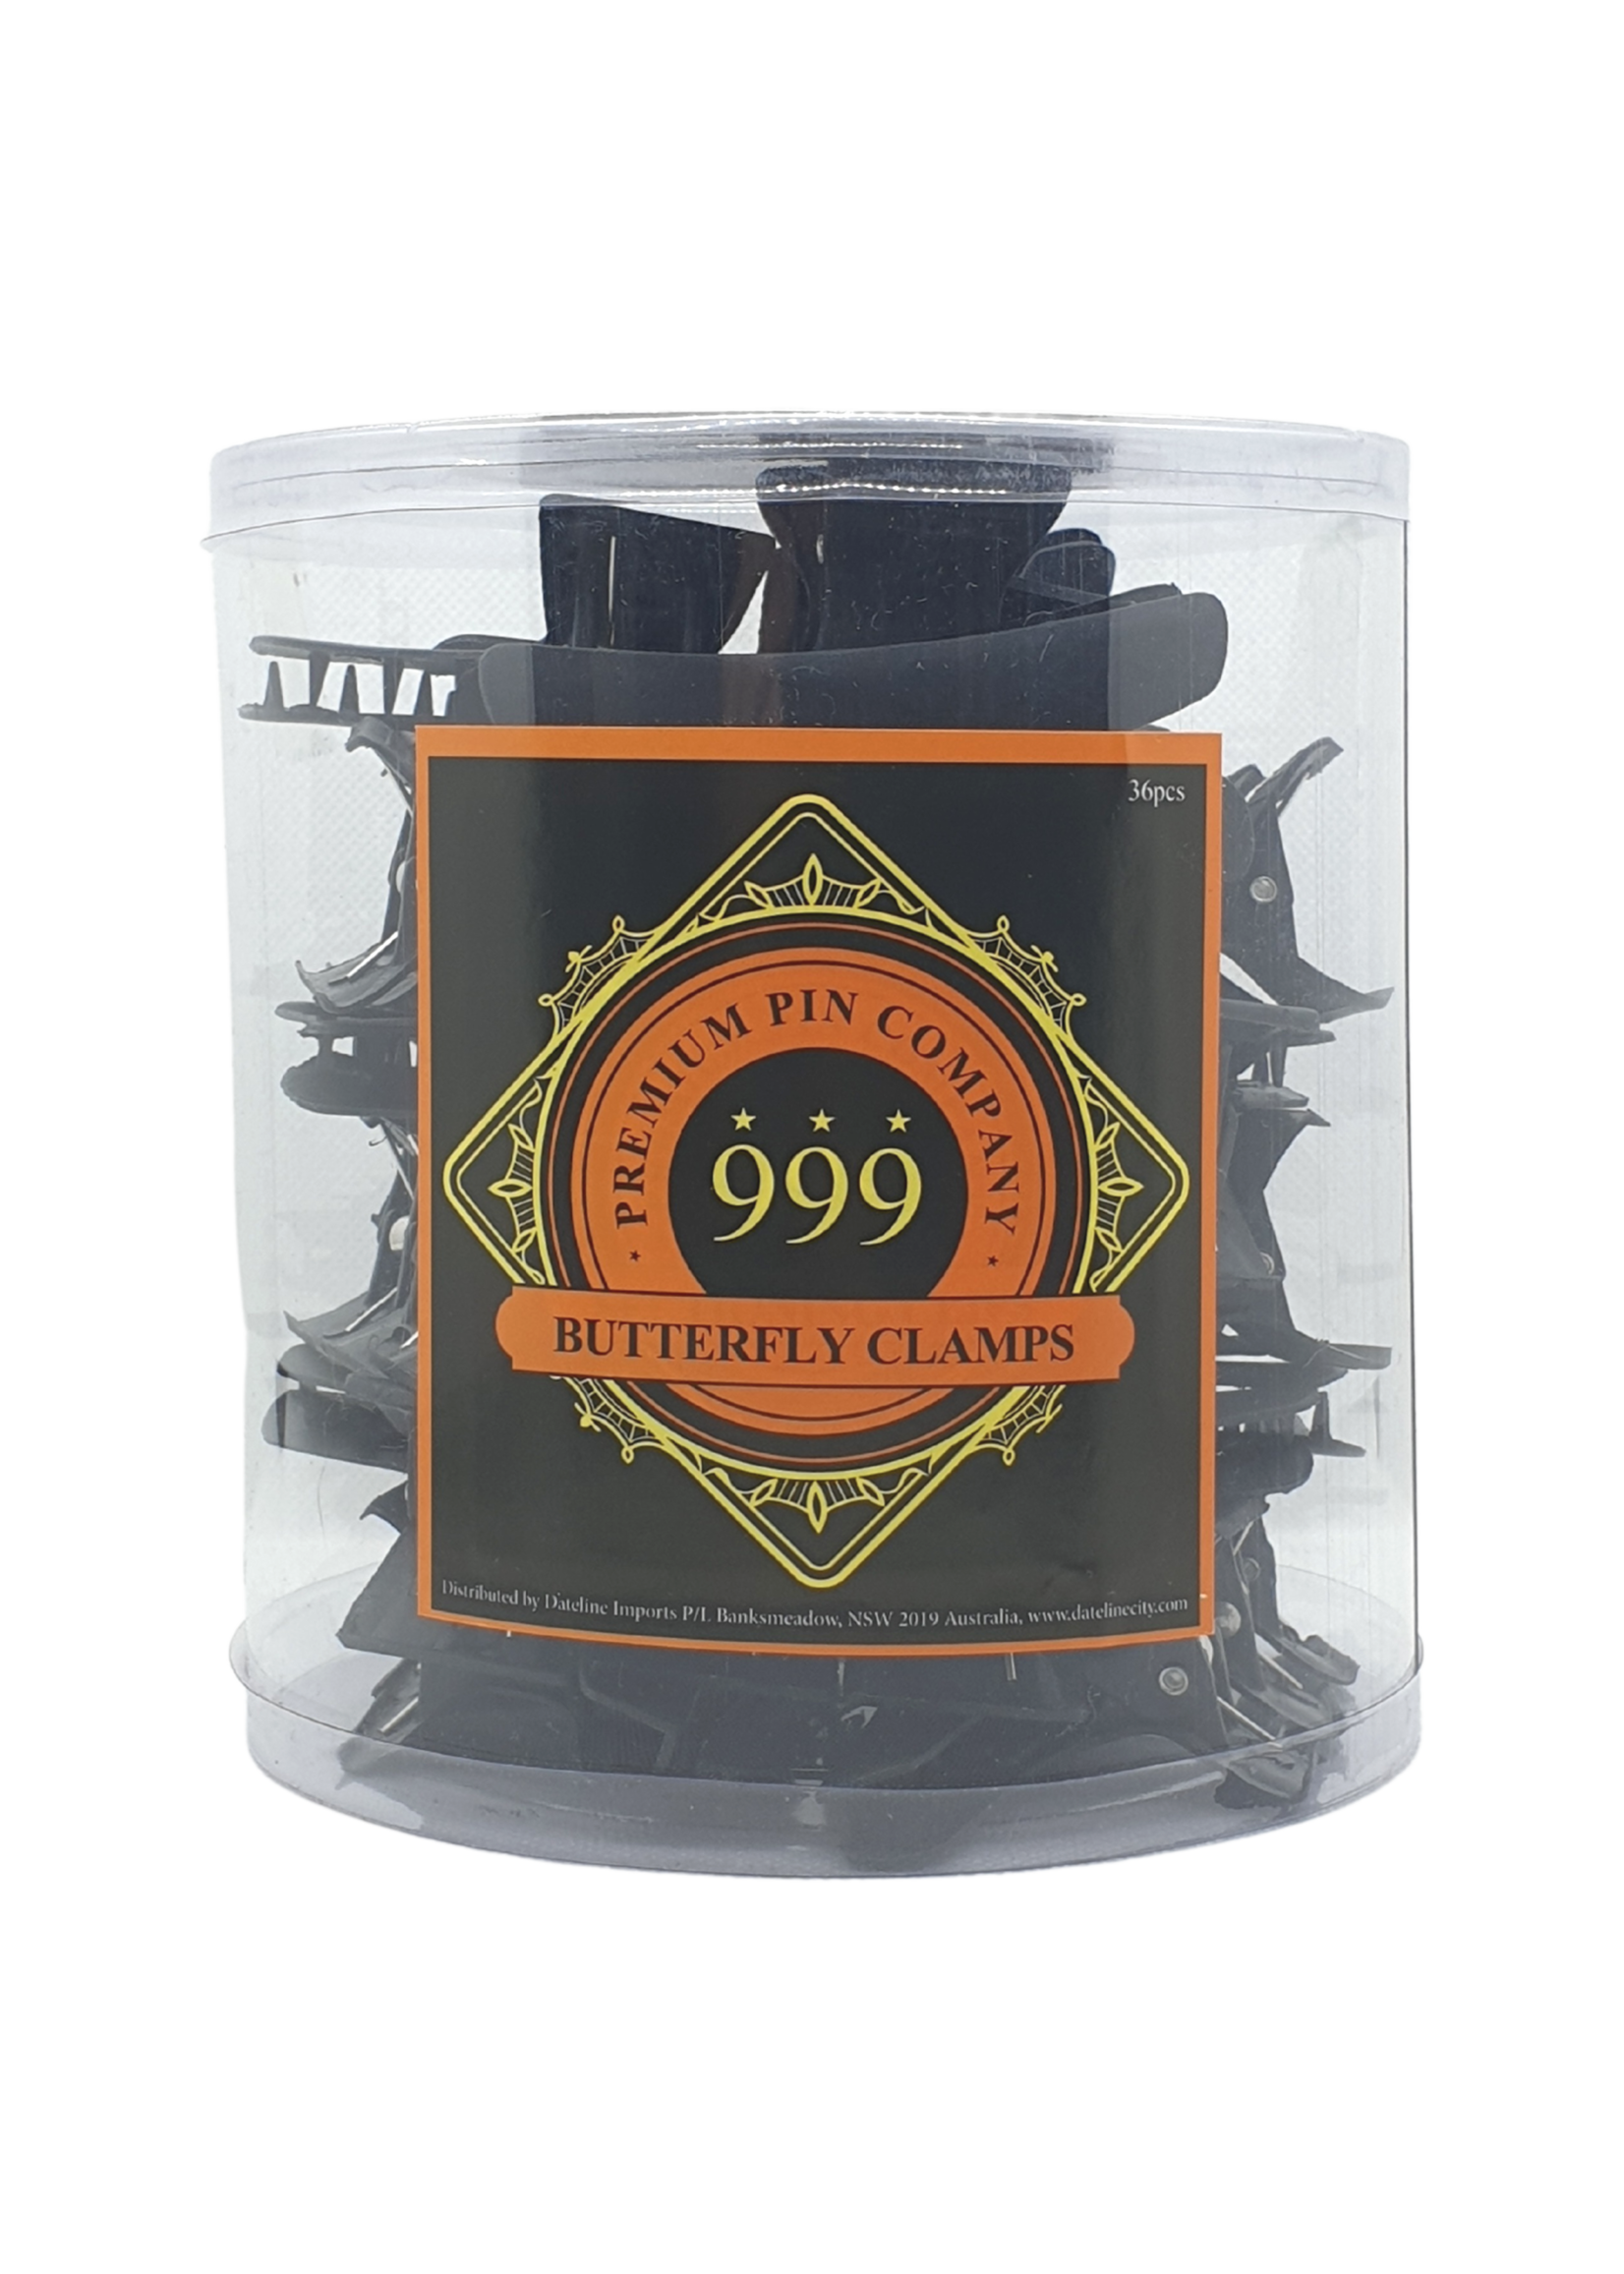 999 Premium Pin Company 999 Butterfly Clamps Large Black Tub 36pcs